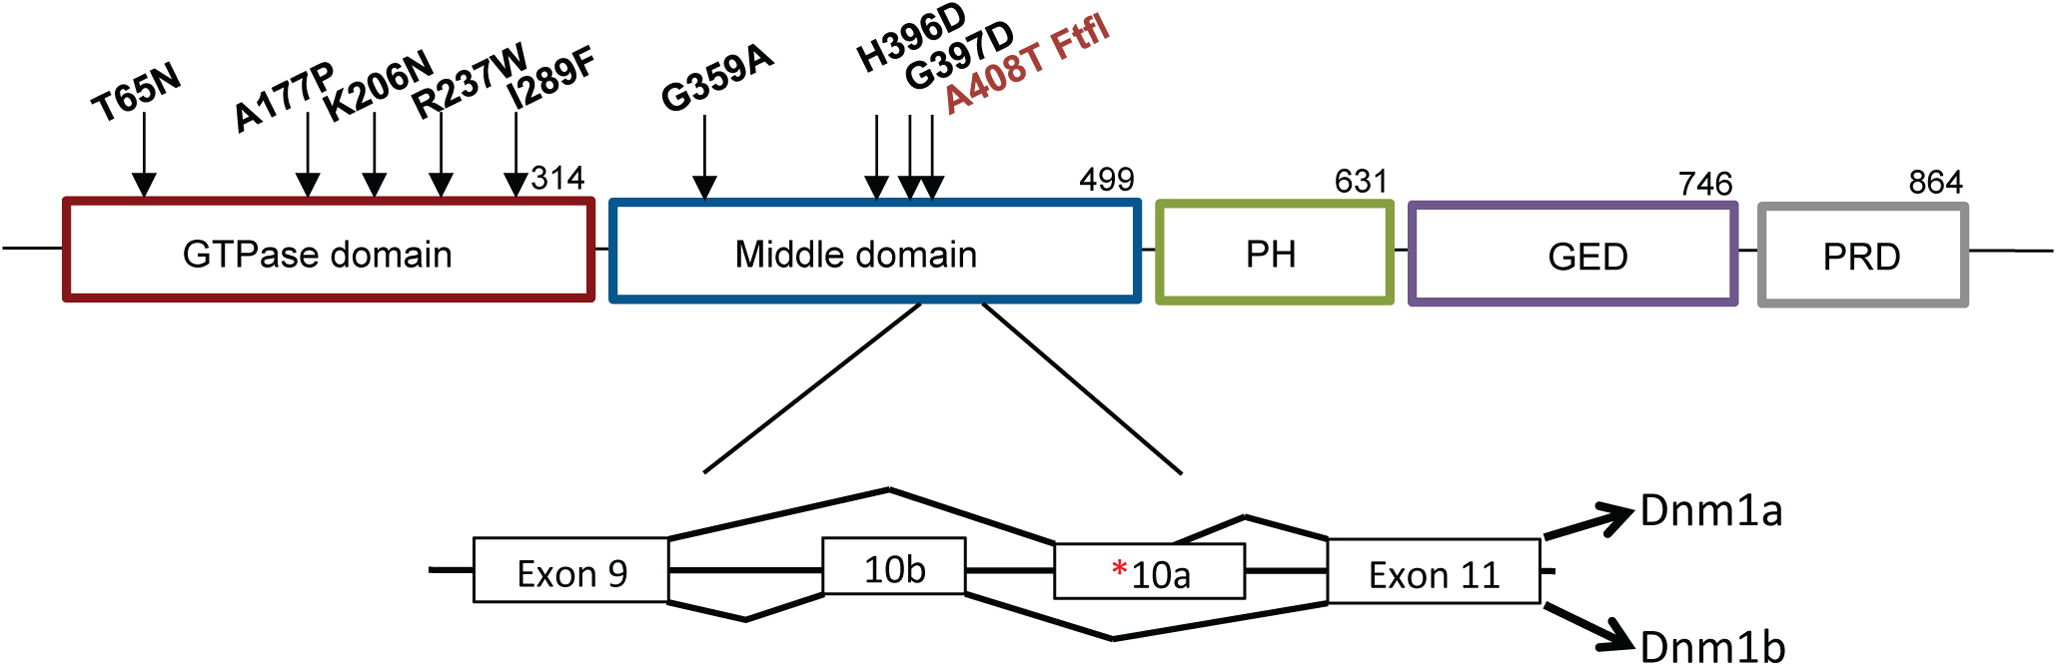 Structure of DNM1.